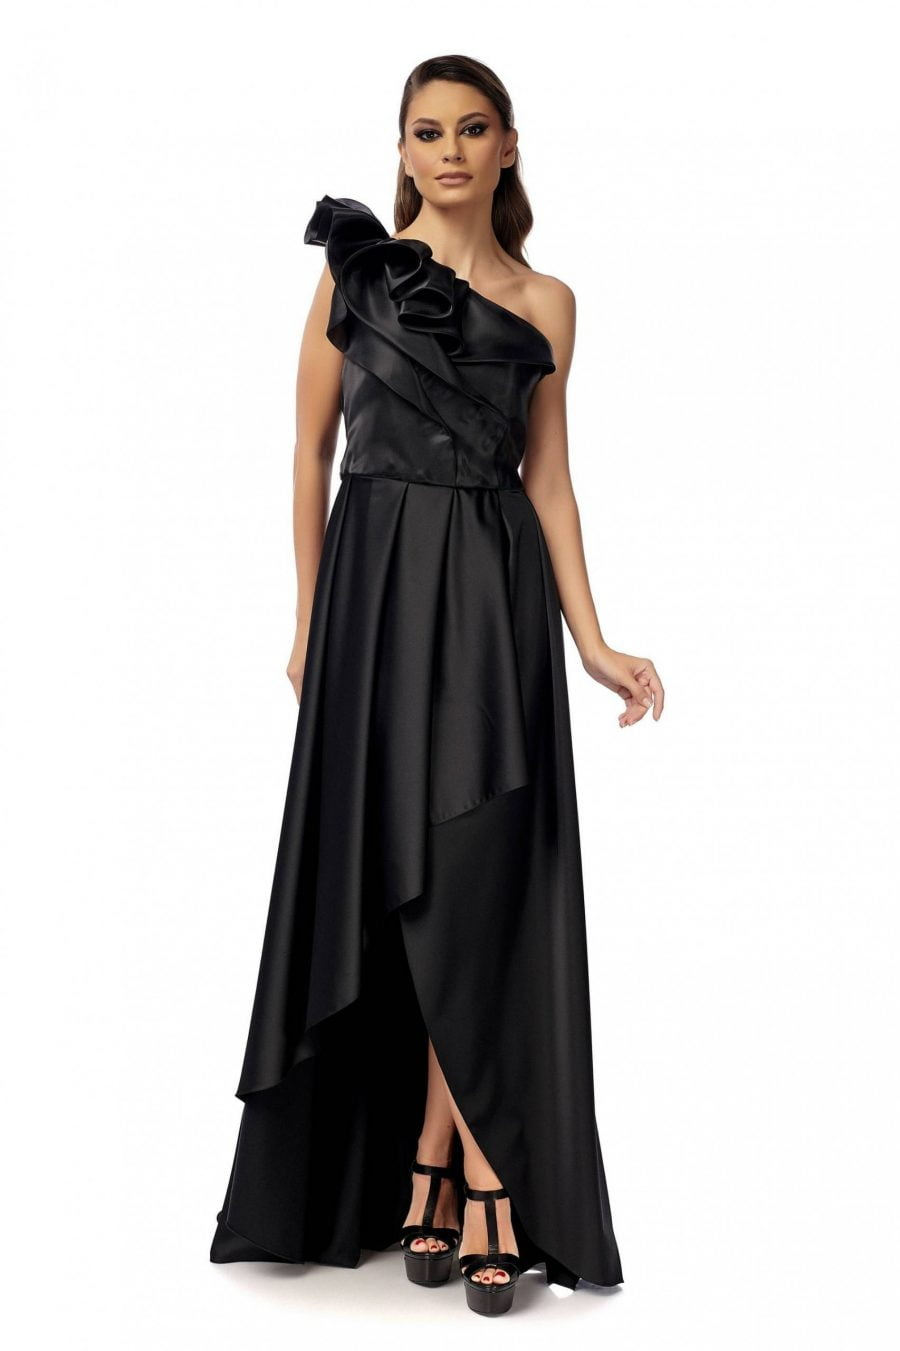 Black evening red carpet Dress